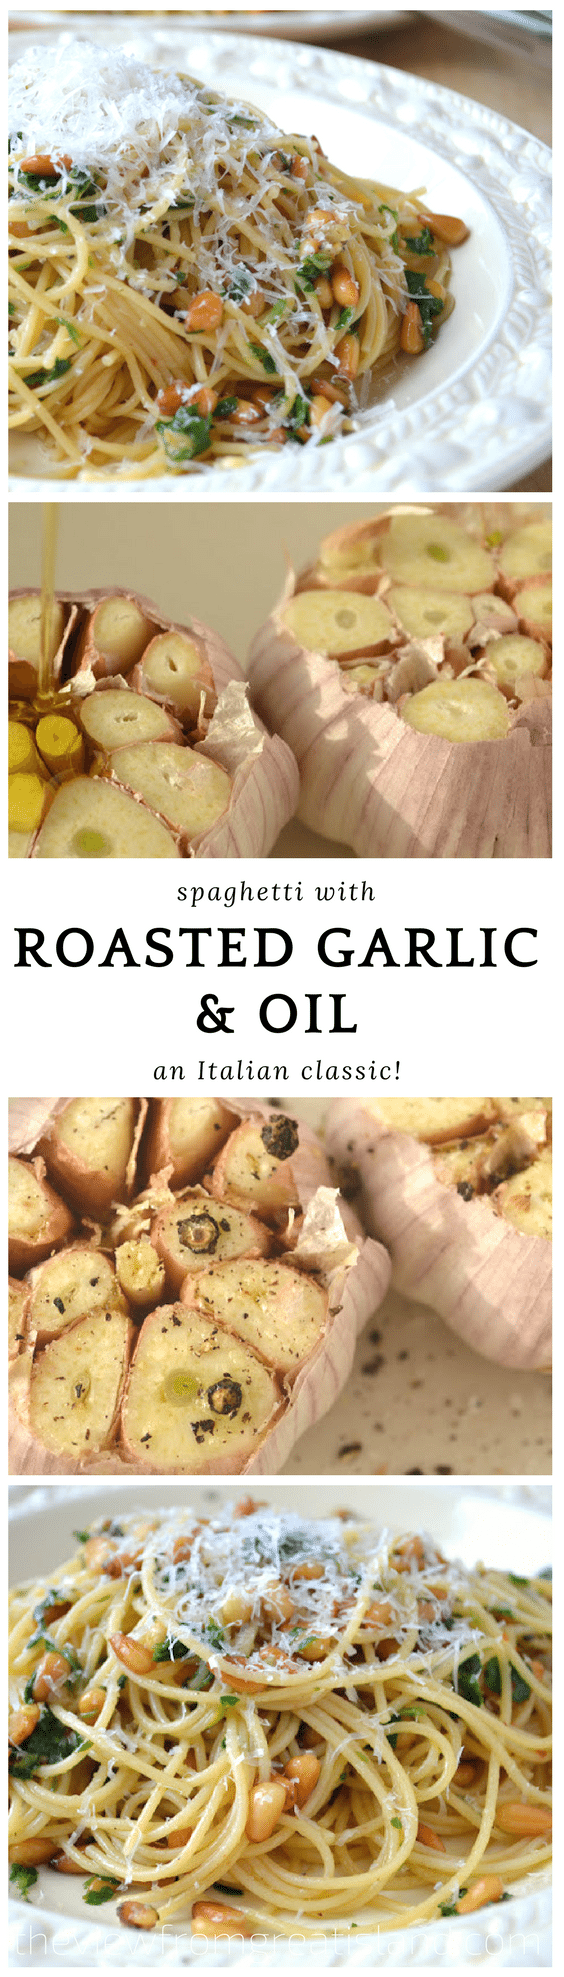 Spaghetti with Roasted Garlic and Oil is a classic Italian 30 minute meal that is healthy, full of flavor, and so satisfying. Roasting the garlic reduces its bite, so you can add as much as you like! #pasta #italian #vegetarian #30minutemeal #dinner #garlic #roastedgarlic #easypasta #familydinner #comfortfood